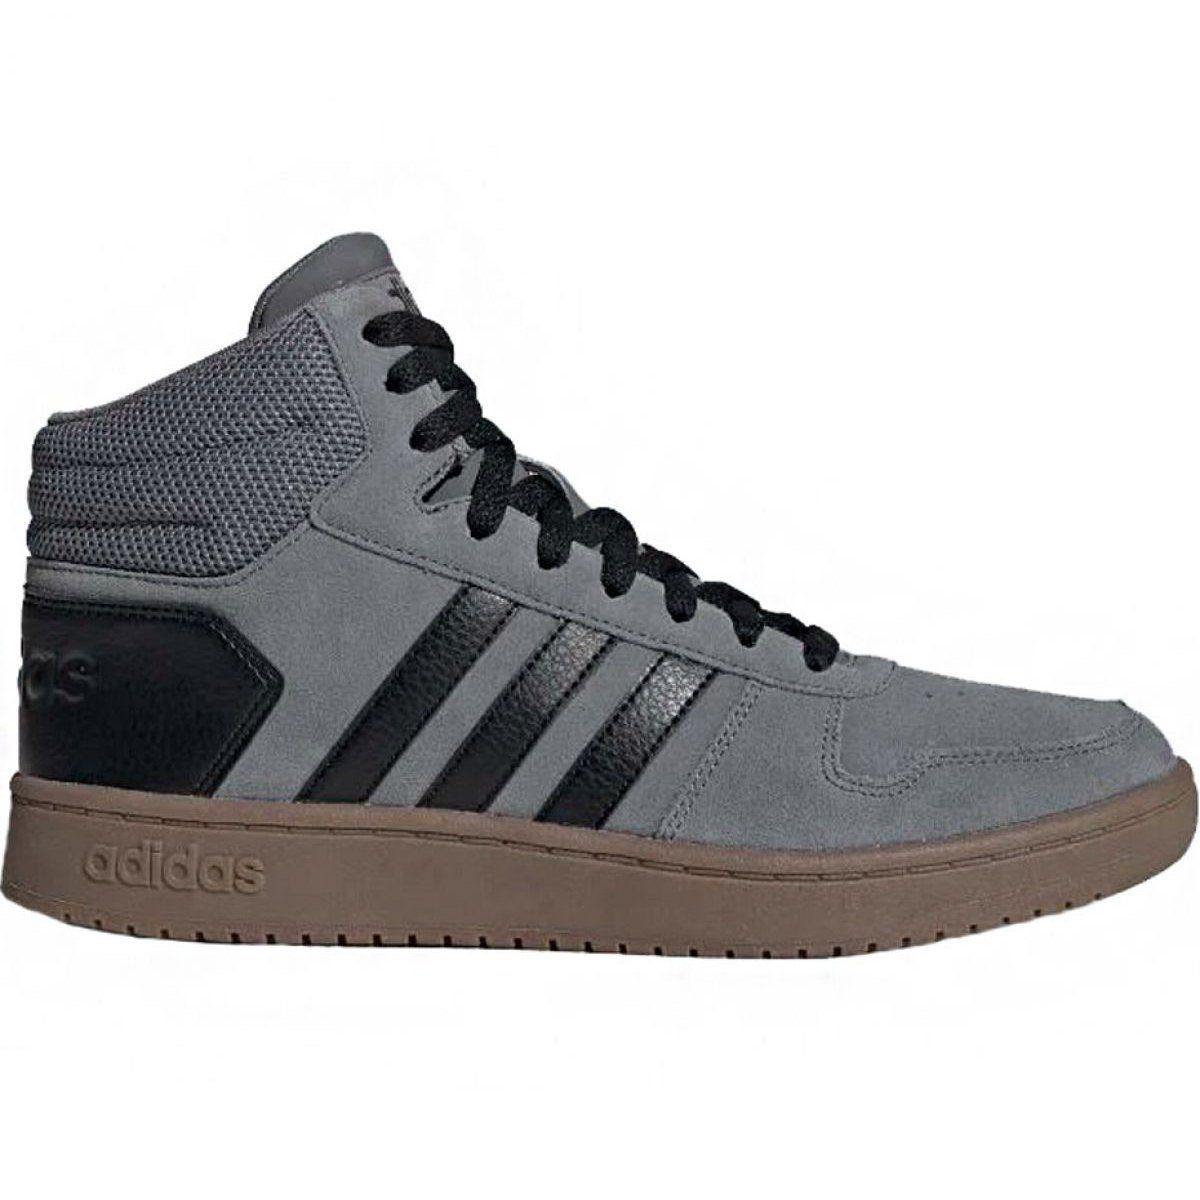 Buty Adidas Hoops 2 0 Mid M Ee7367 Szare Adidas Running Shoes Women Mens Athletic Shoes Sneakers High Top Basketball Shoes